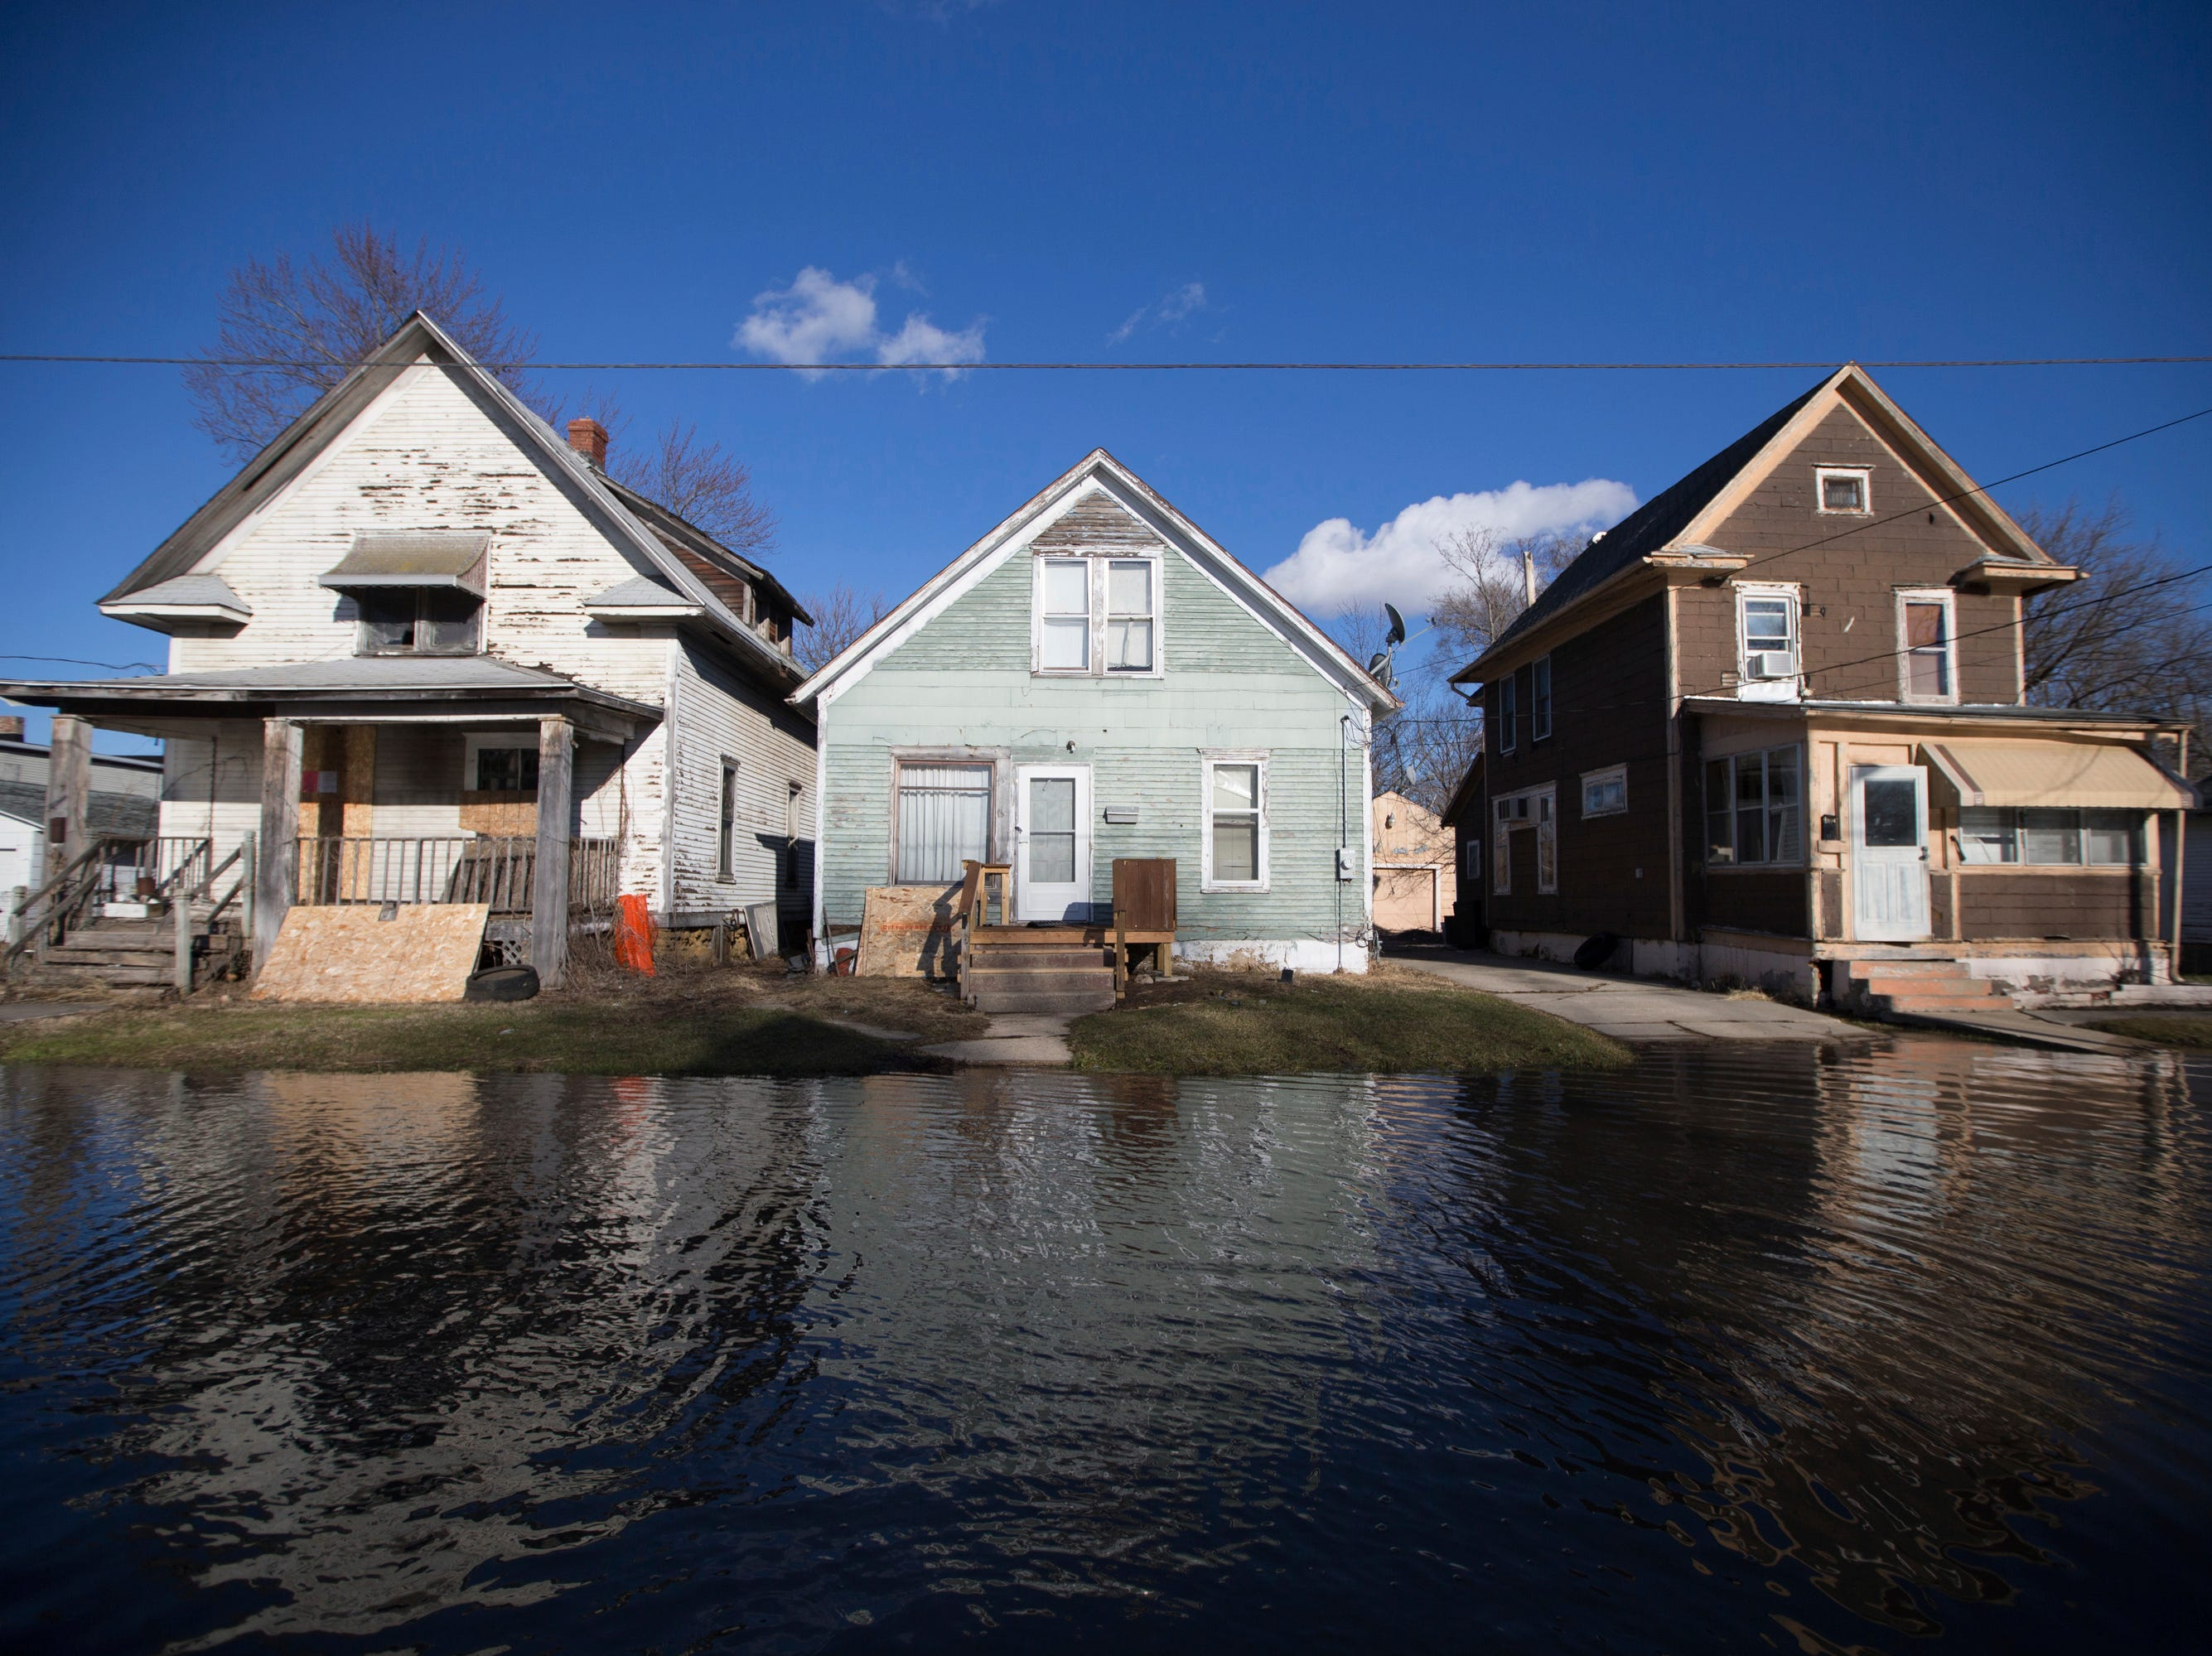 Floodwaters lap close to the front yards of homes on Friday, March 15, 2019, in Freeport, Ill. Rising waters along the Pecatonica and Rock rivers have flooded homes in northern Illinois.